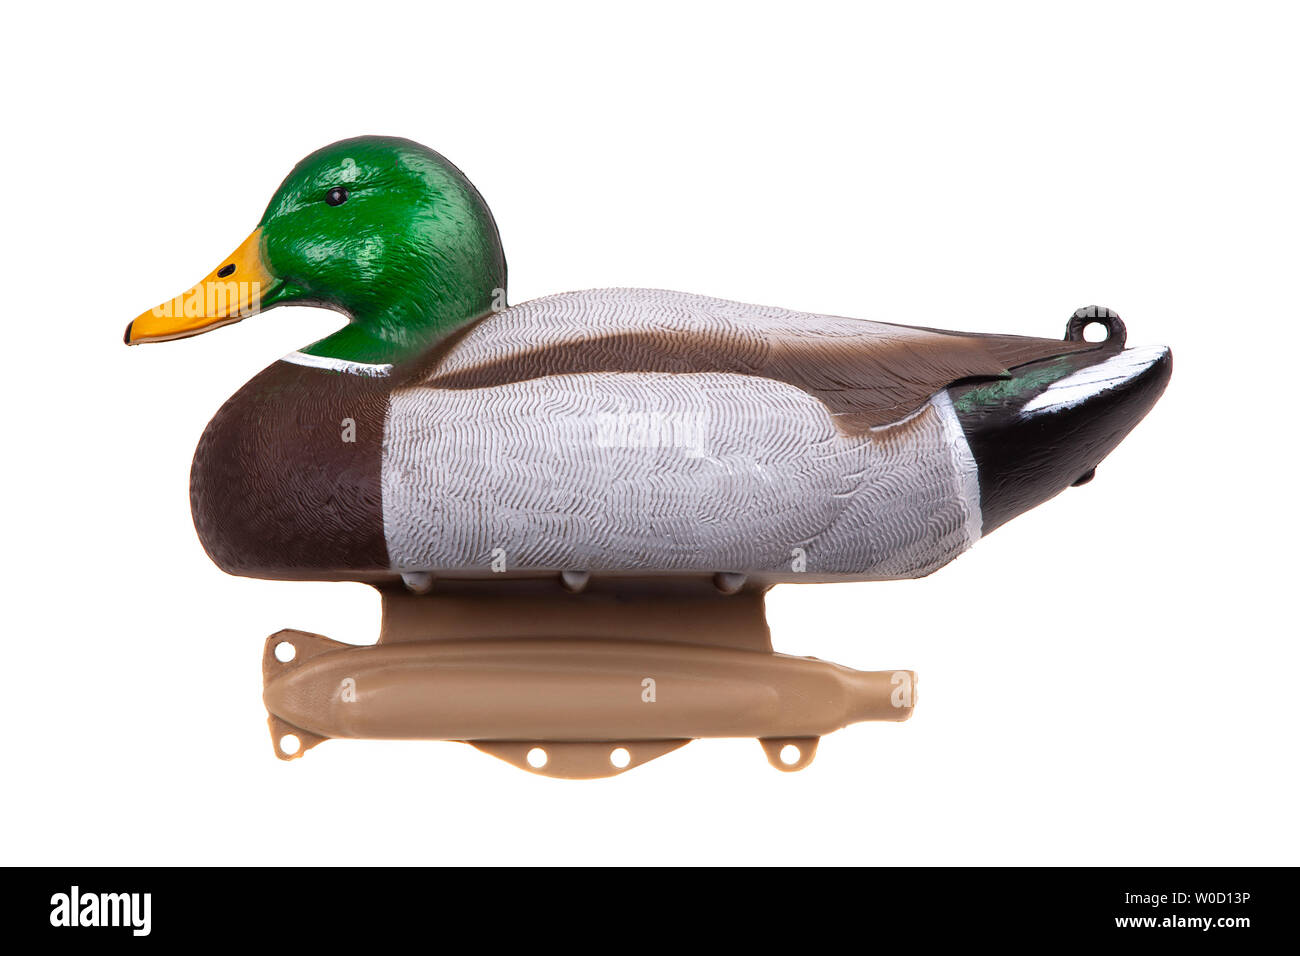 Mallard Duck Decoy isolated on white background - Stock Image